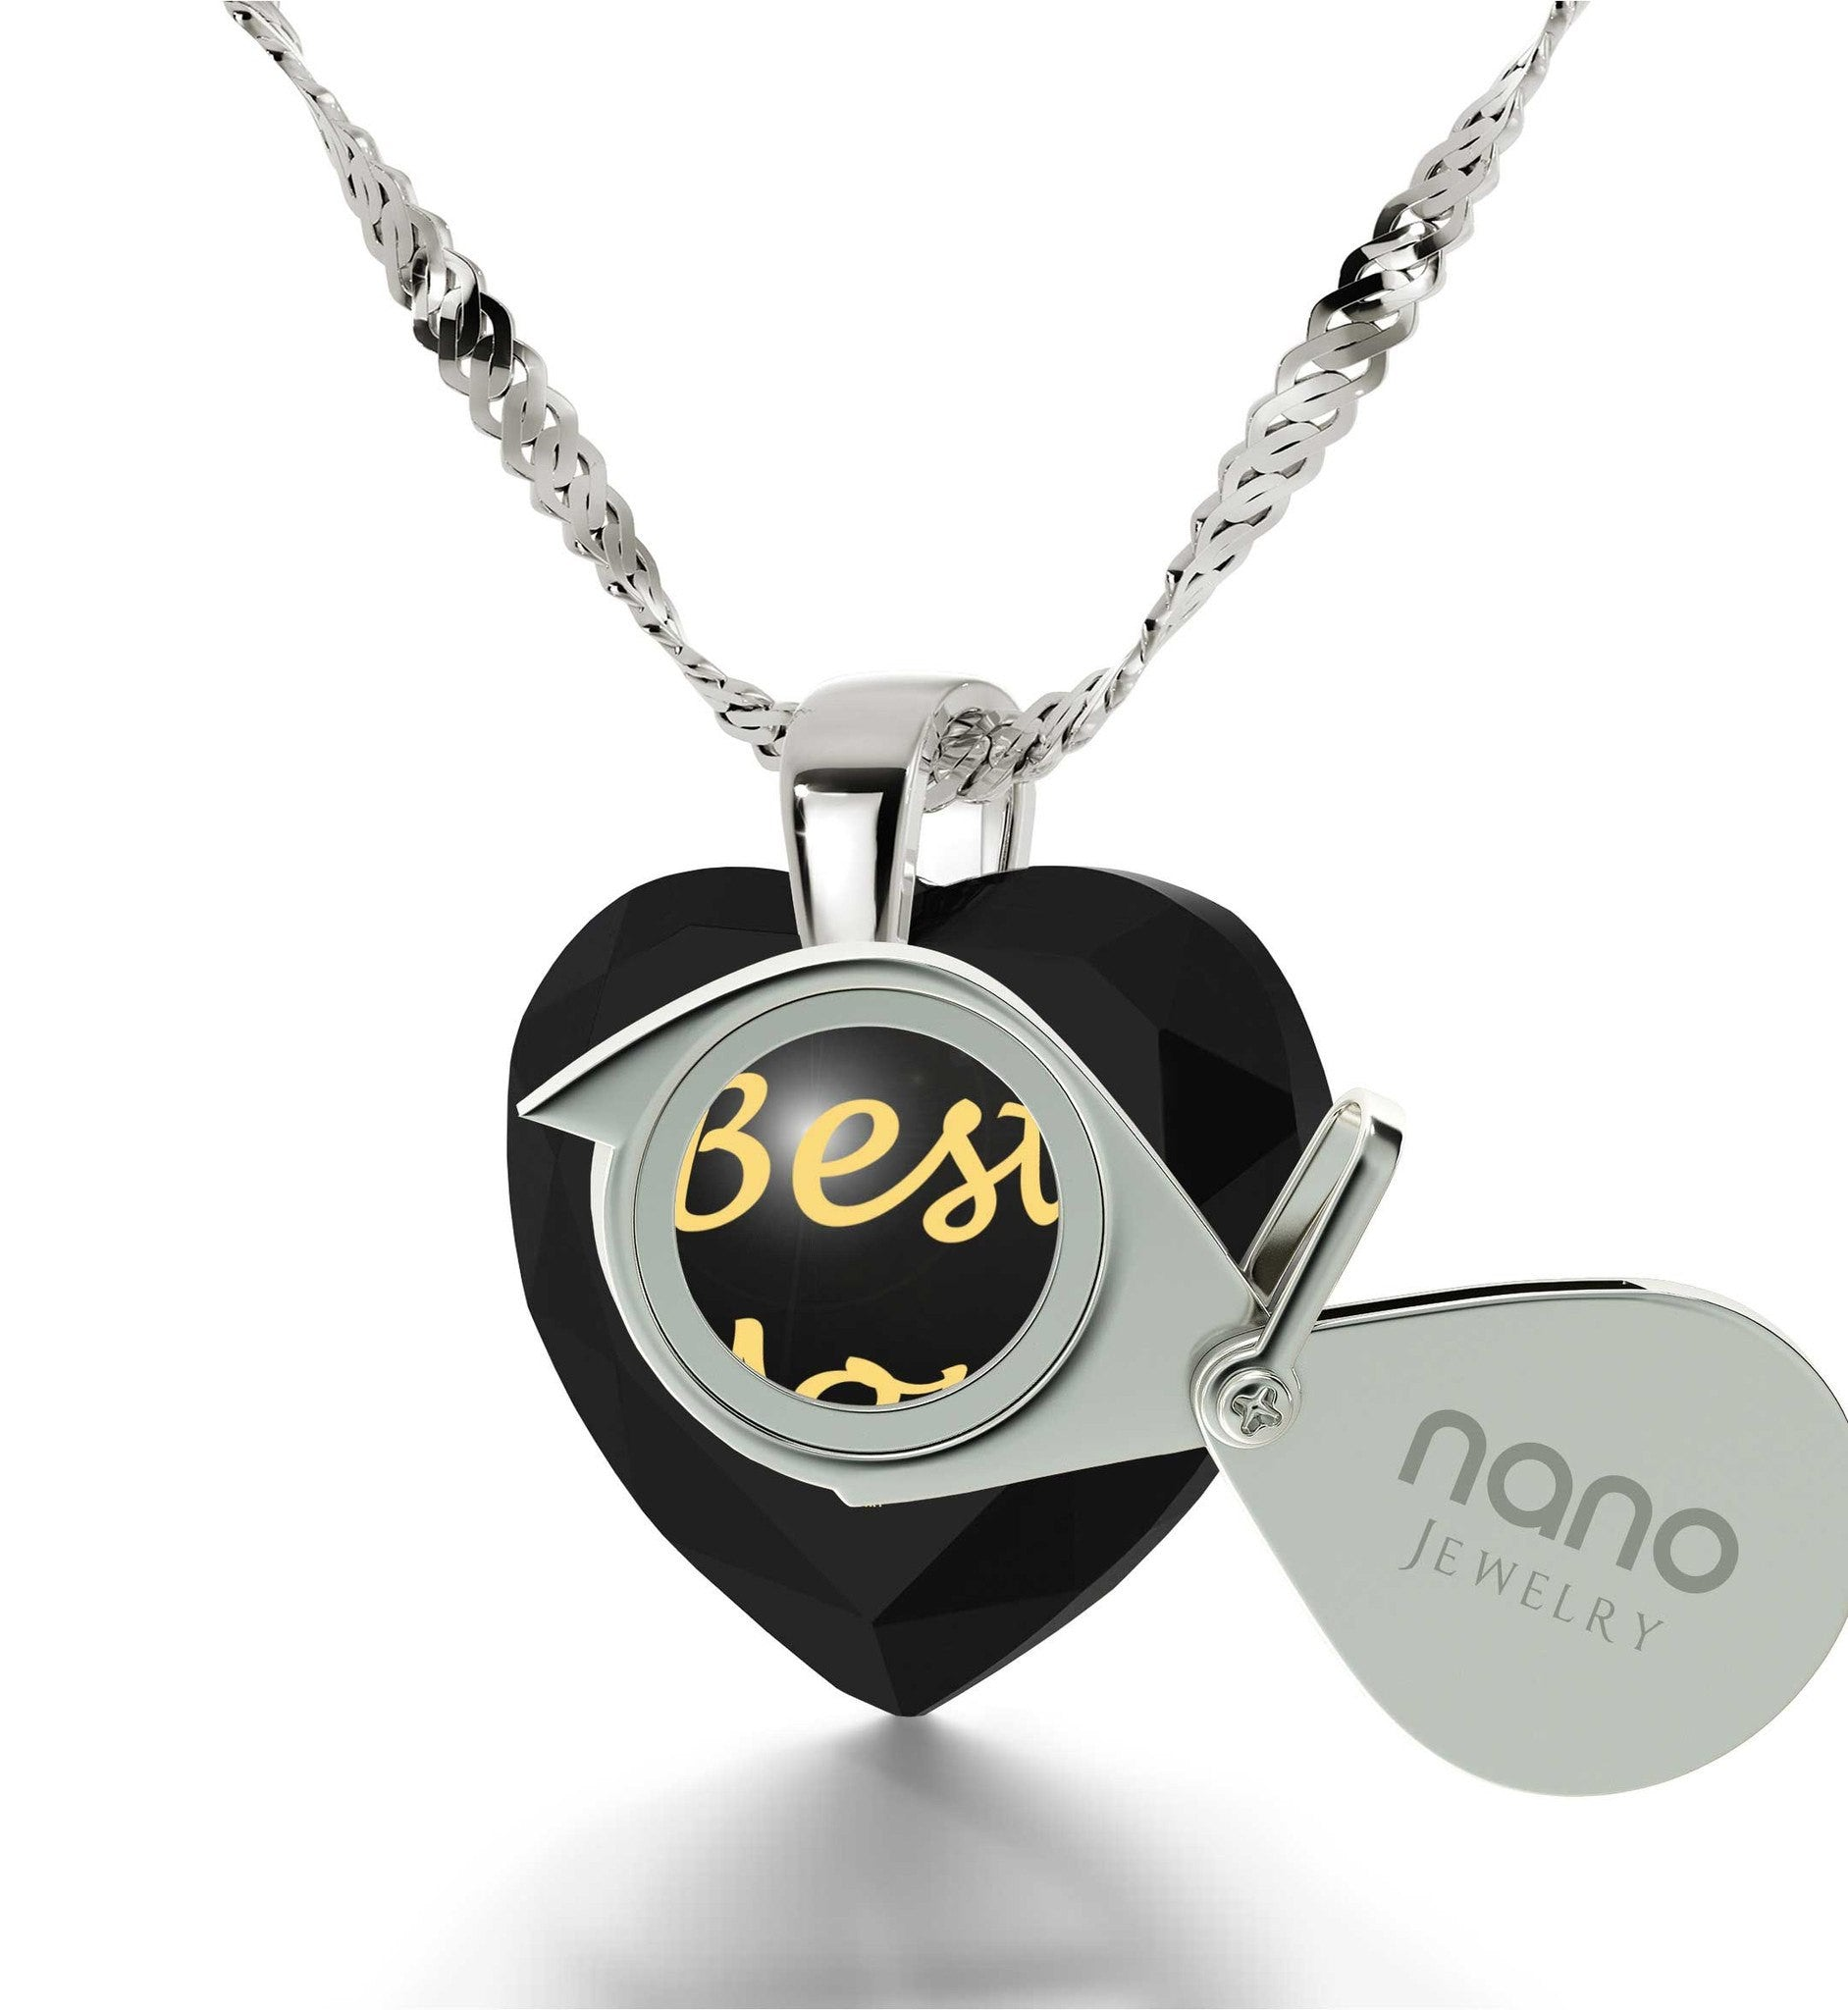 Top Gifts for Mom, Engraved Black Jewelry, Mother Birthday Present, by Nano